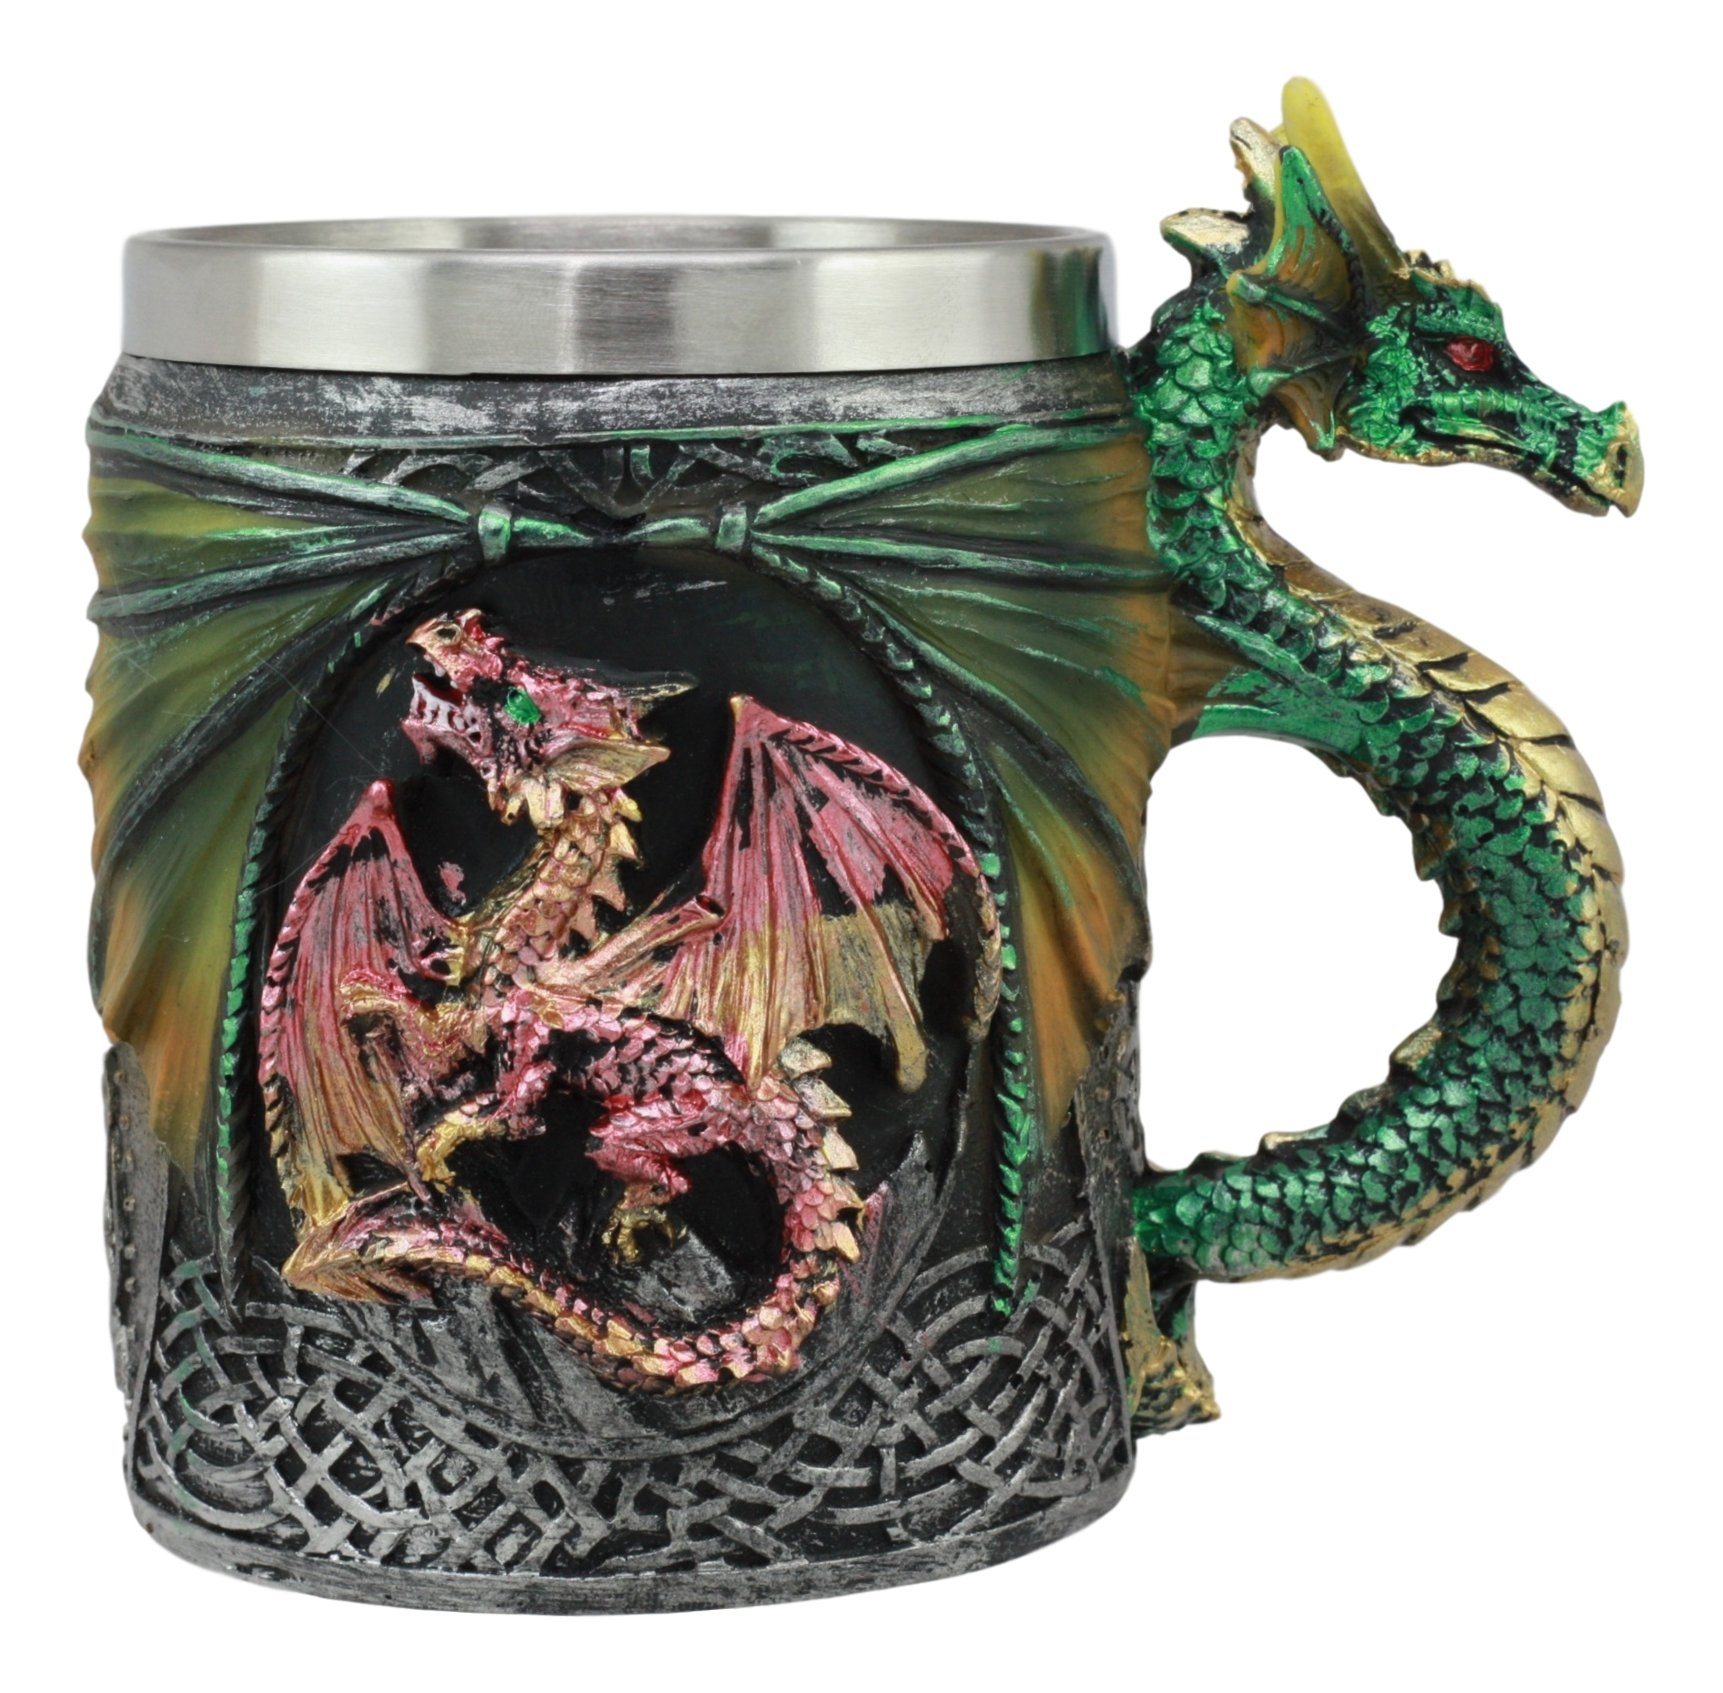 Ebros Myths And Legends The Conception Of Red Fire Oberon Dragon Beer Stein Tankard Coffee Cup Mug With Green Dragon…